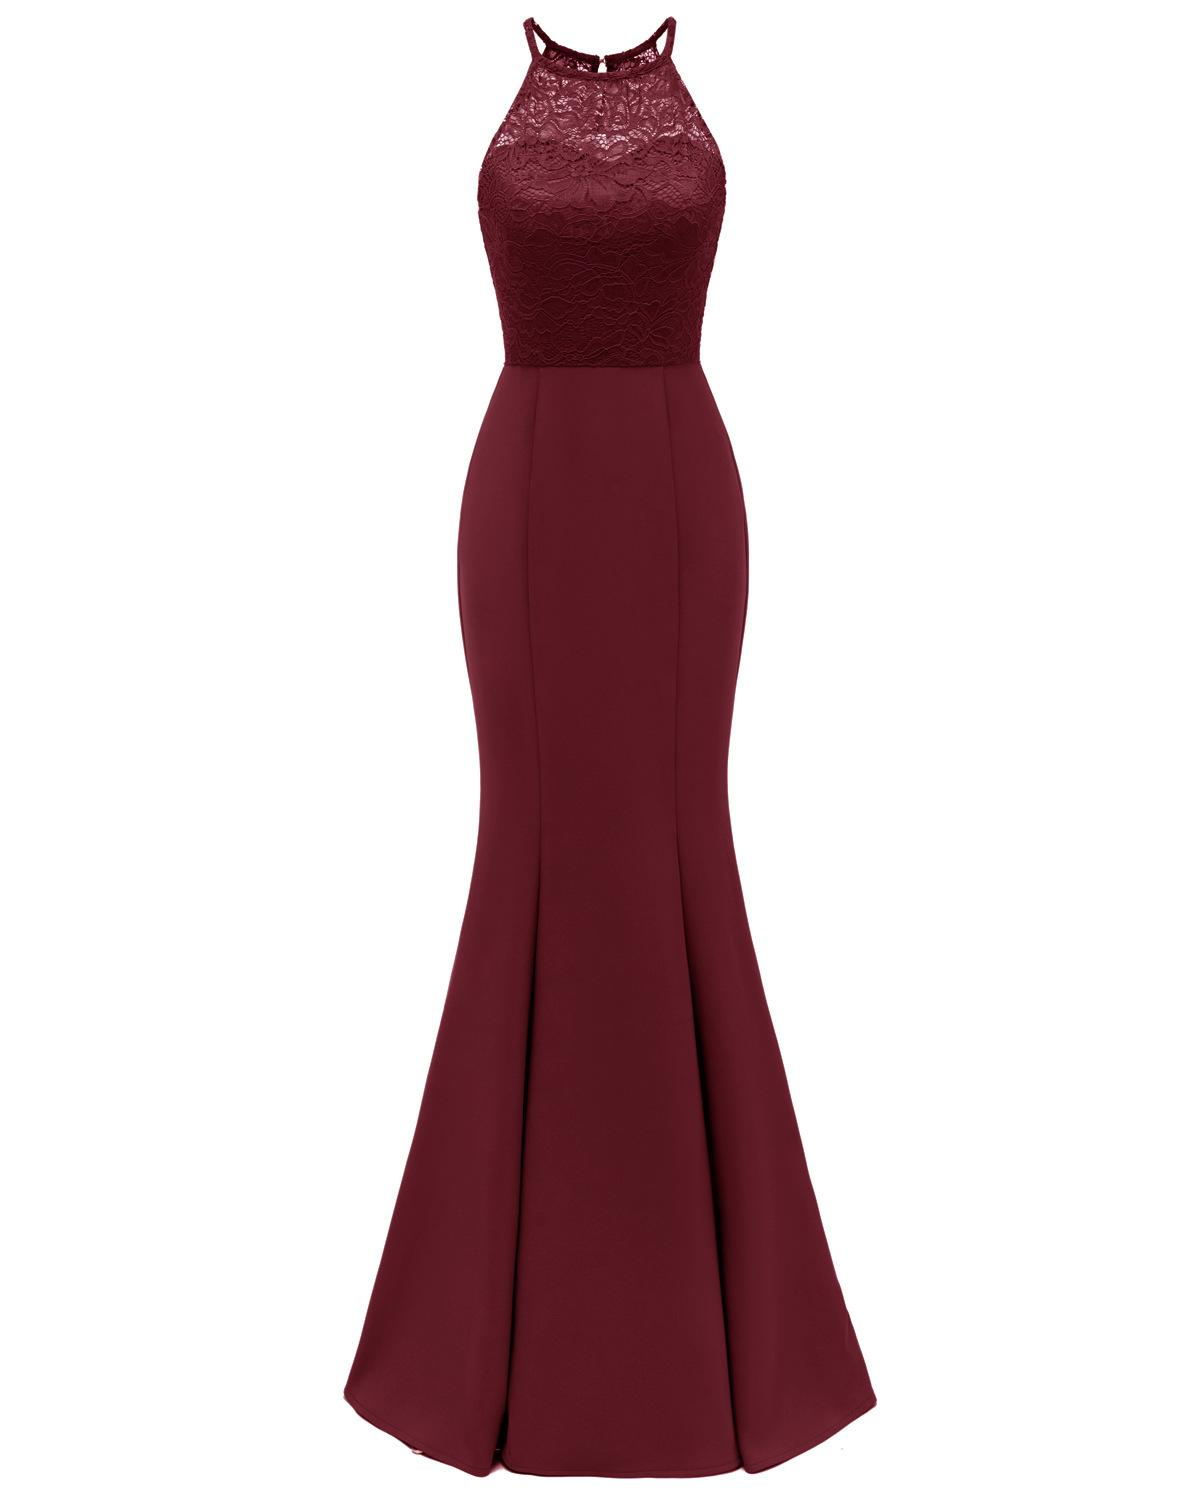 Halter Burgundy Robe Mermaid Longue Dentelle Bridesmaid Dresses 2019 Sleeveless Navy Blue Black Women Wedding Guest Party Gowns